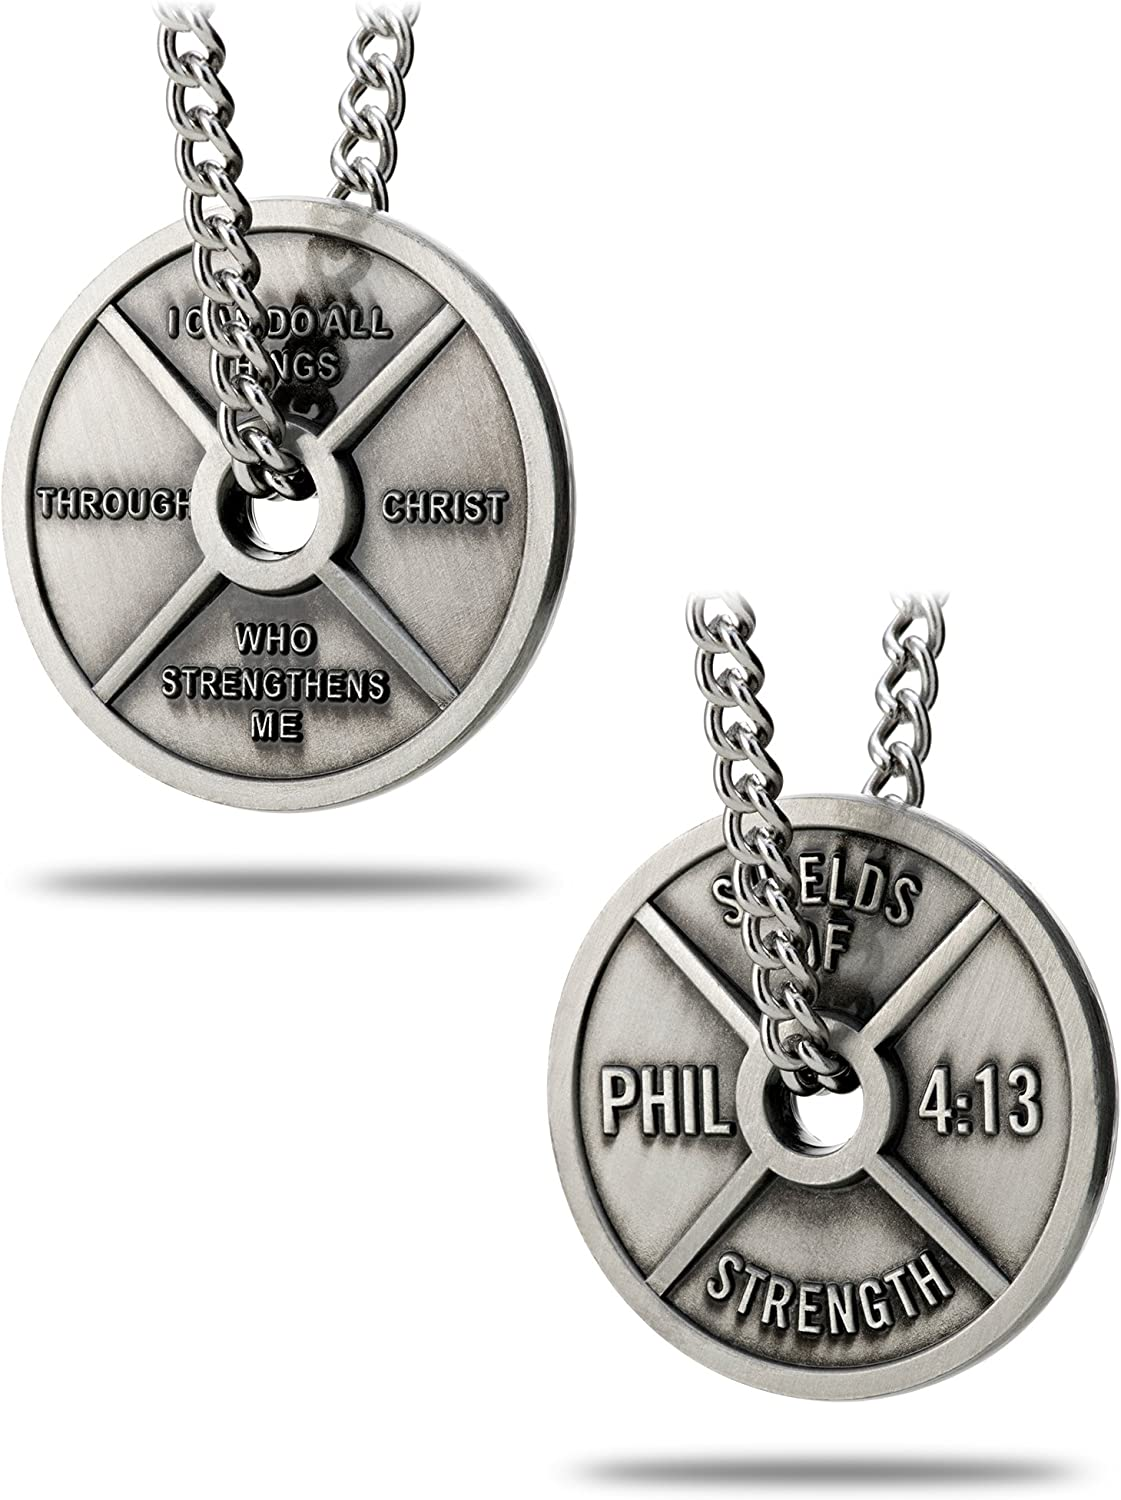 Shields of Strength Men's Antique Finish High Relief Weight Plate Necklace-Phil 4:13